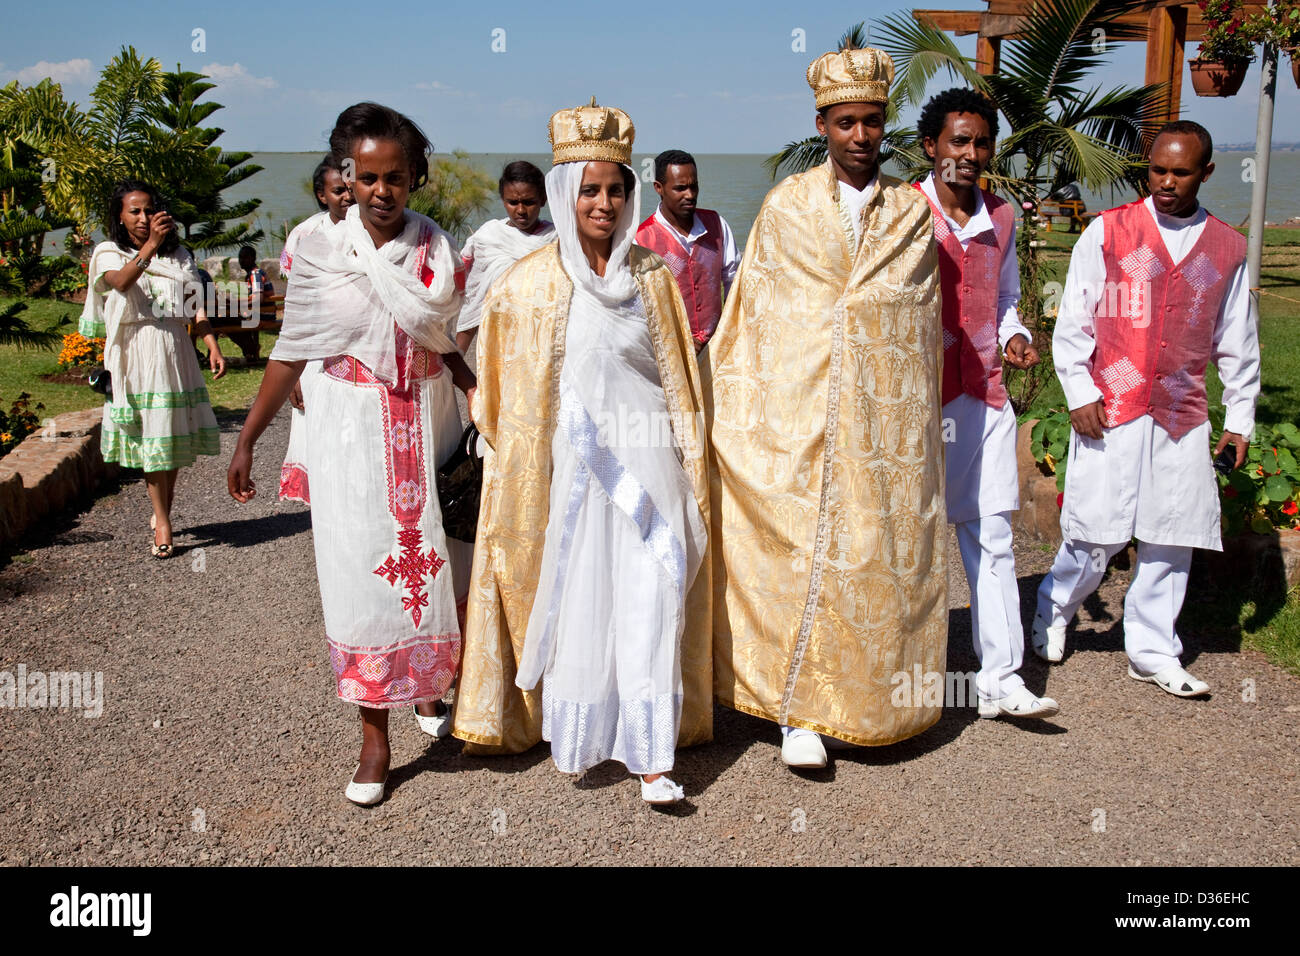 Ethiopian Wedding Party Lake Tana Bahir Dar Ethiopia Stock Photo Royalty Free Image